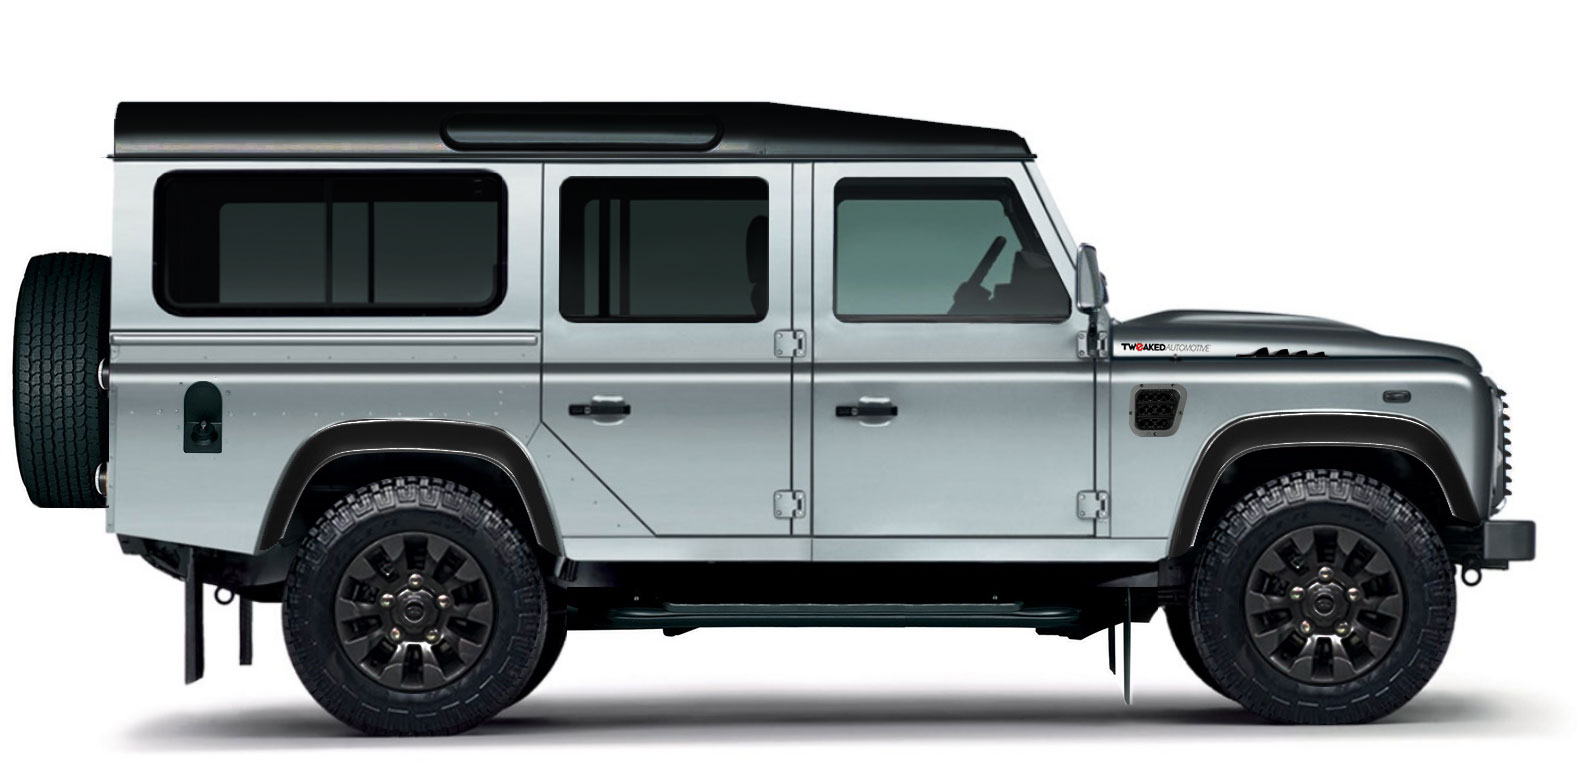 land rover defender 110 xs station wagon tweaked edition tweaked automotive. Black Bedroom Furniture Sets. Home Design Ideas